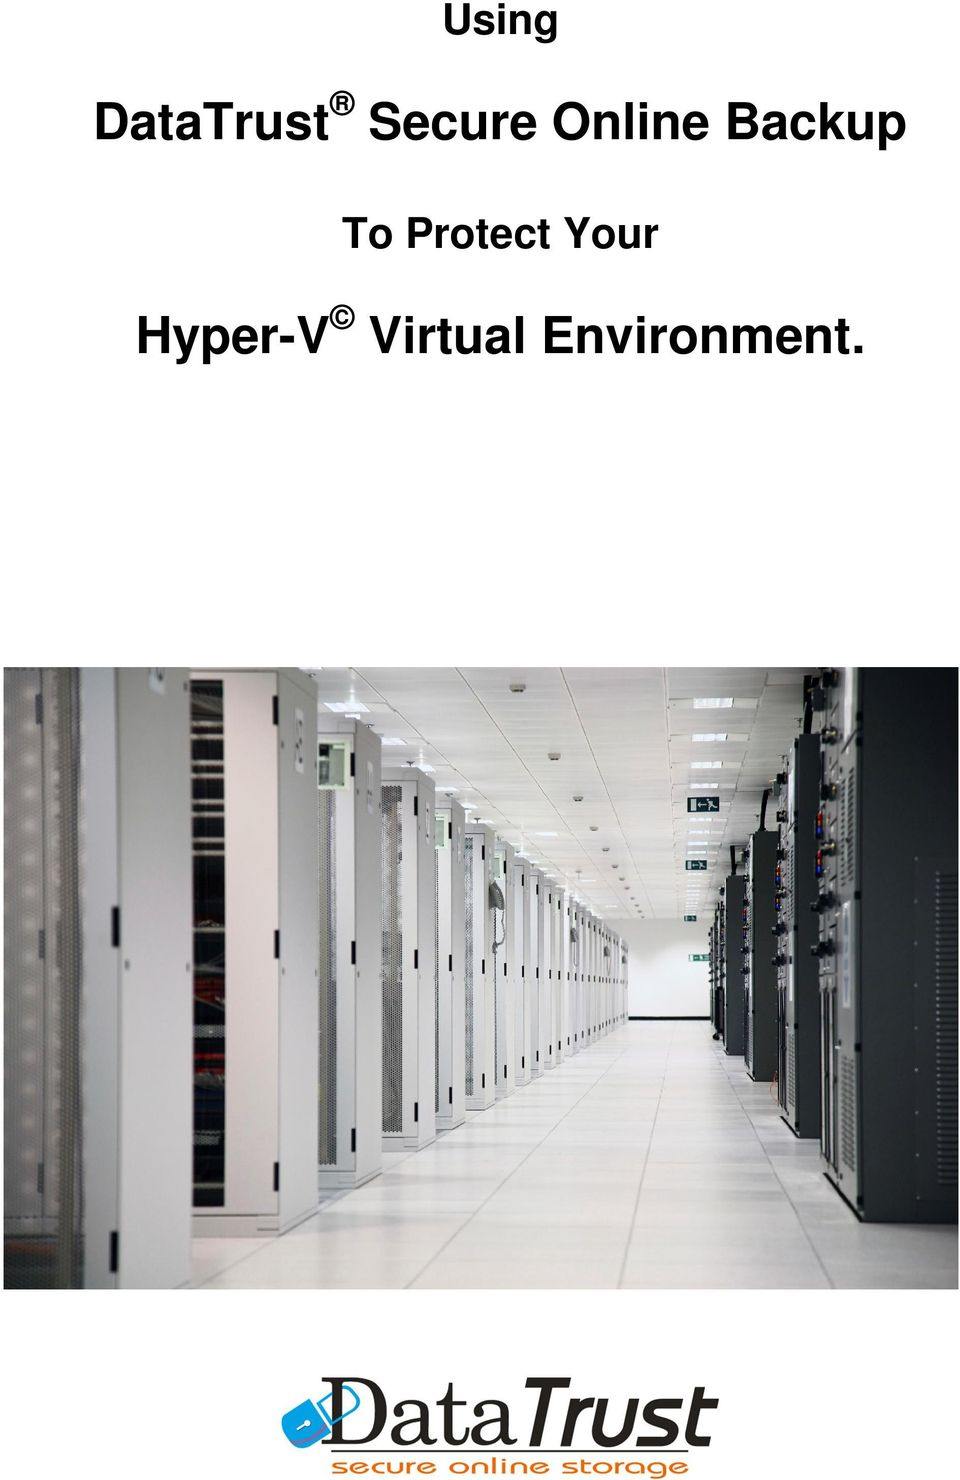 Protect Your Hyper-V